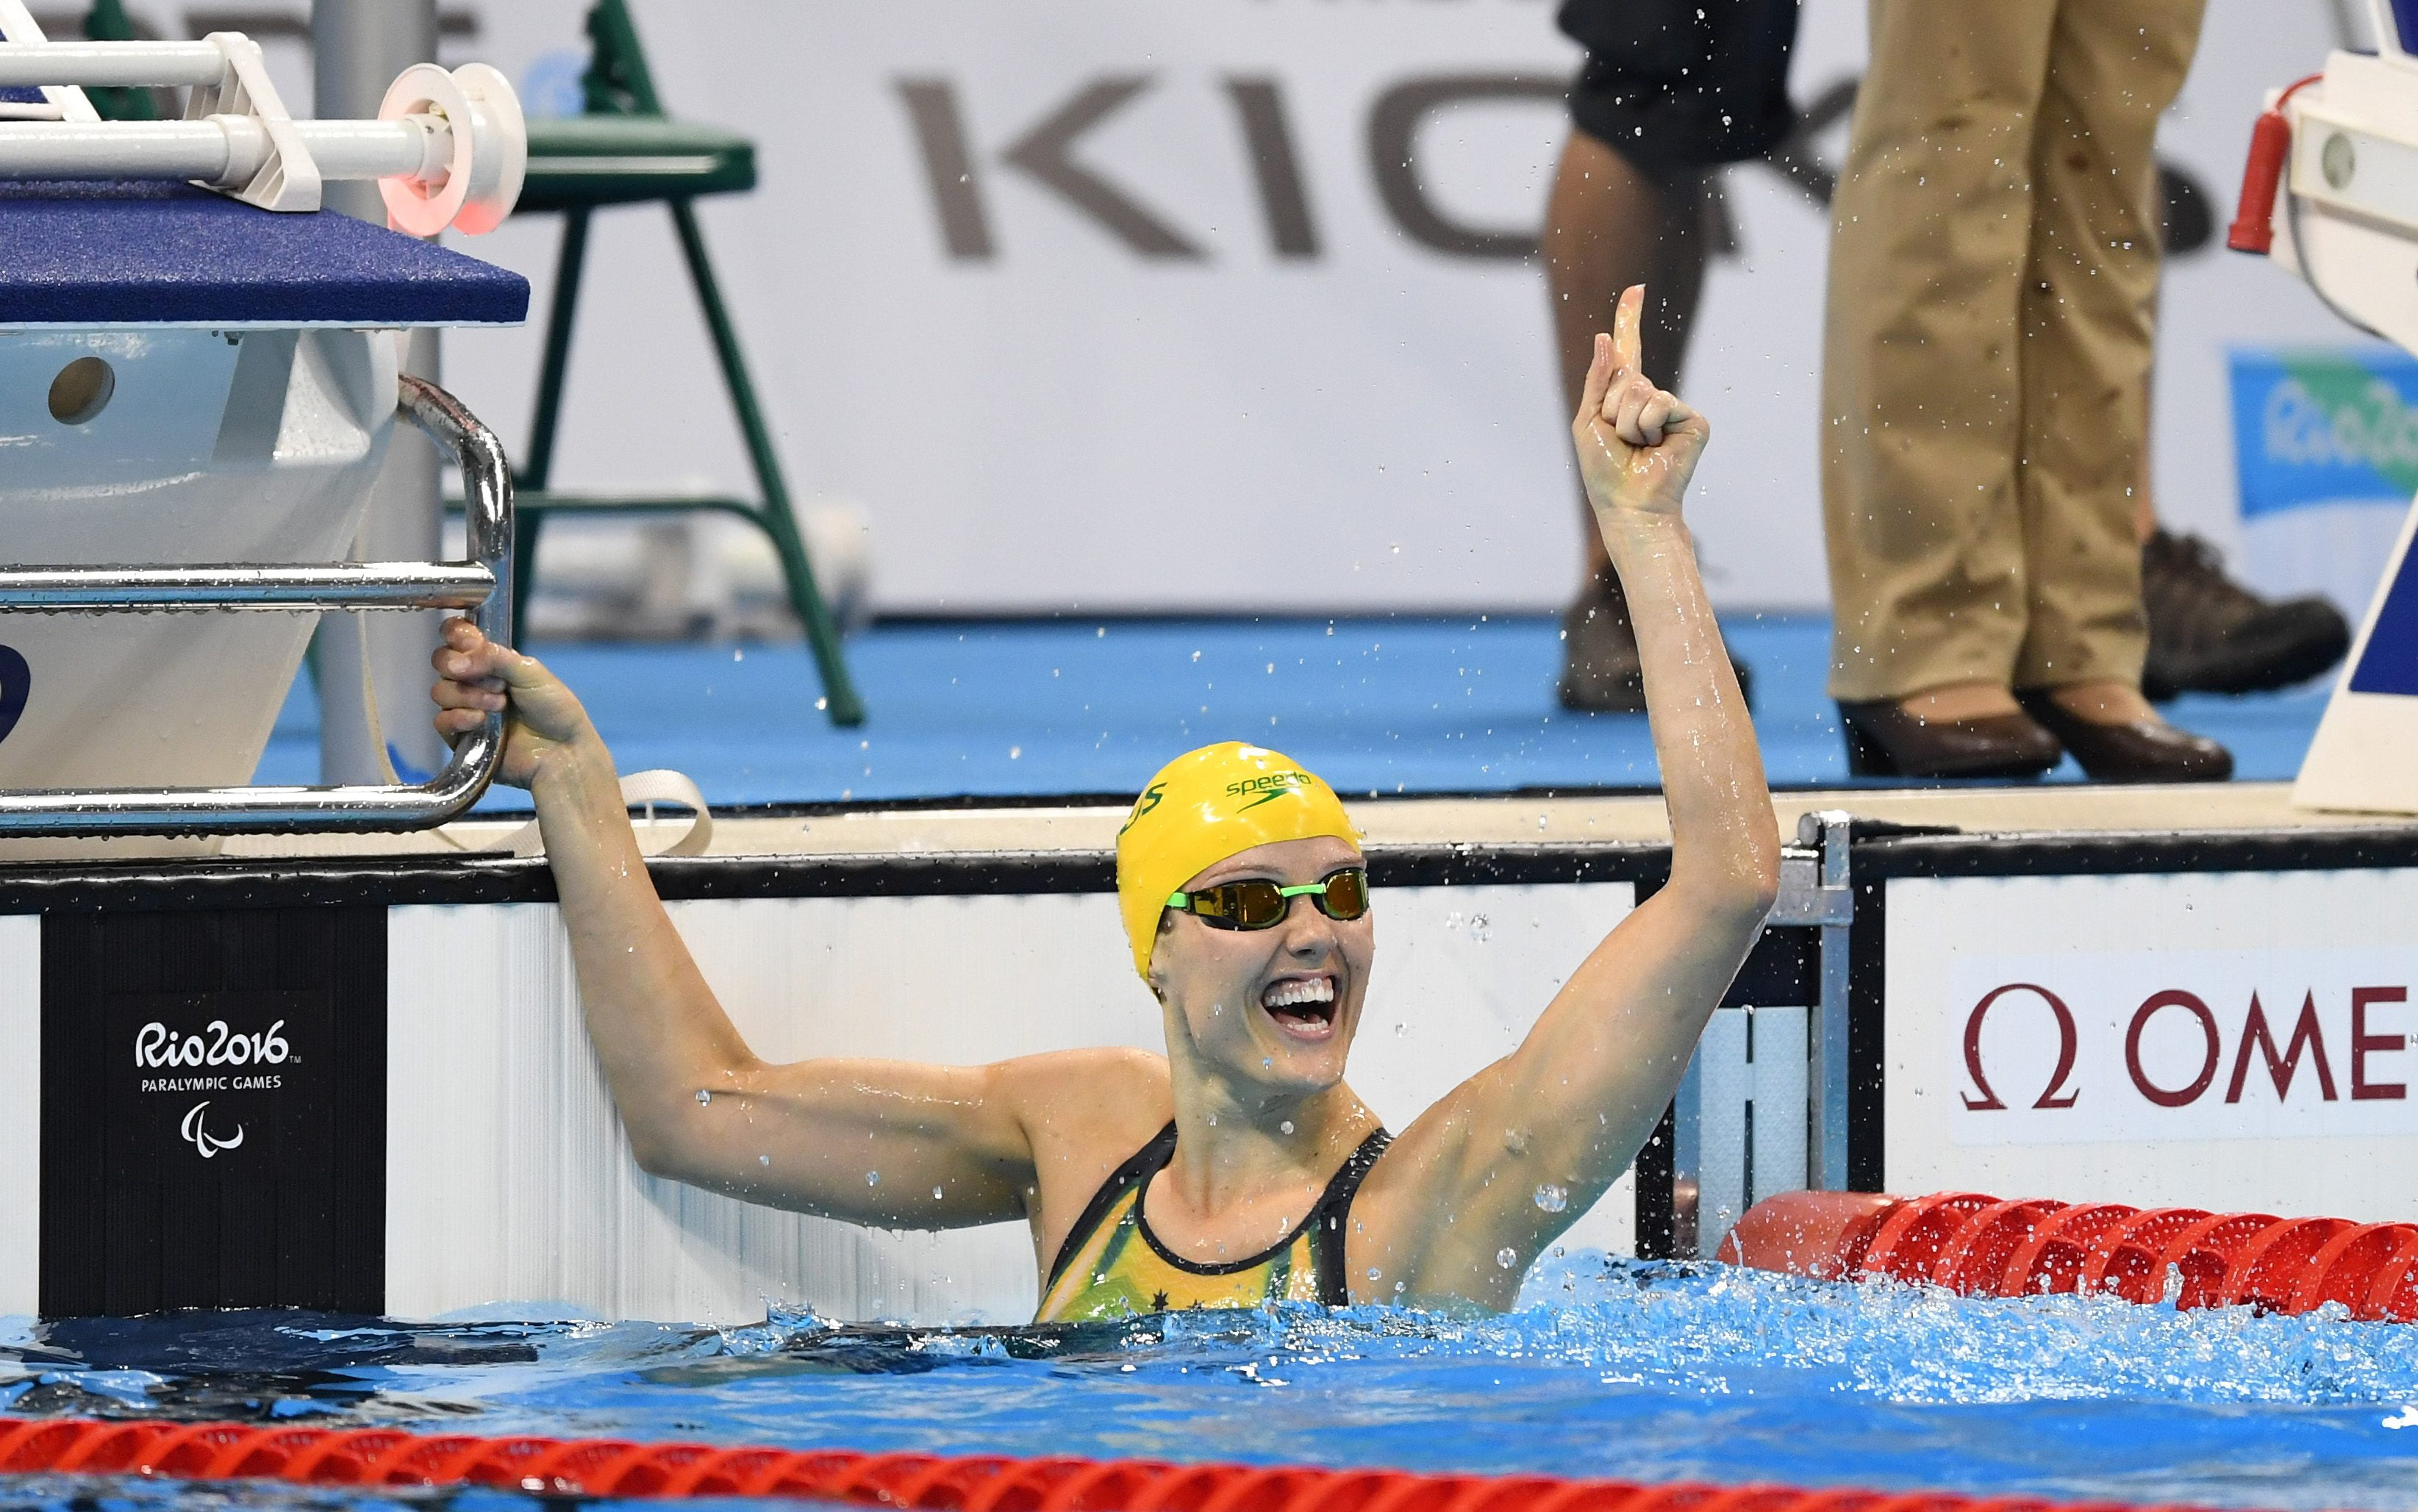 Cole puts it all on the line for Tokyo 2020